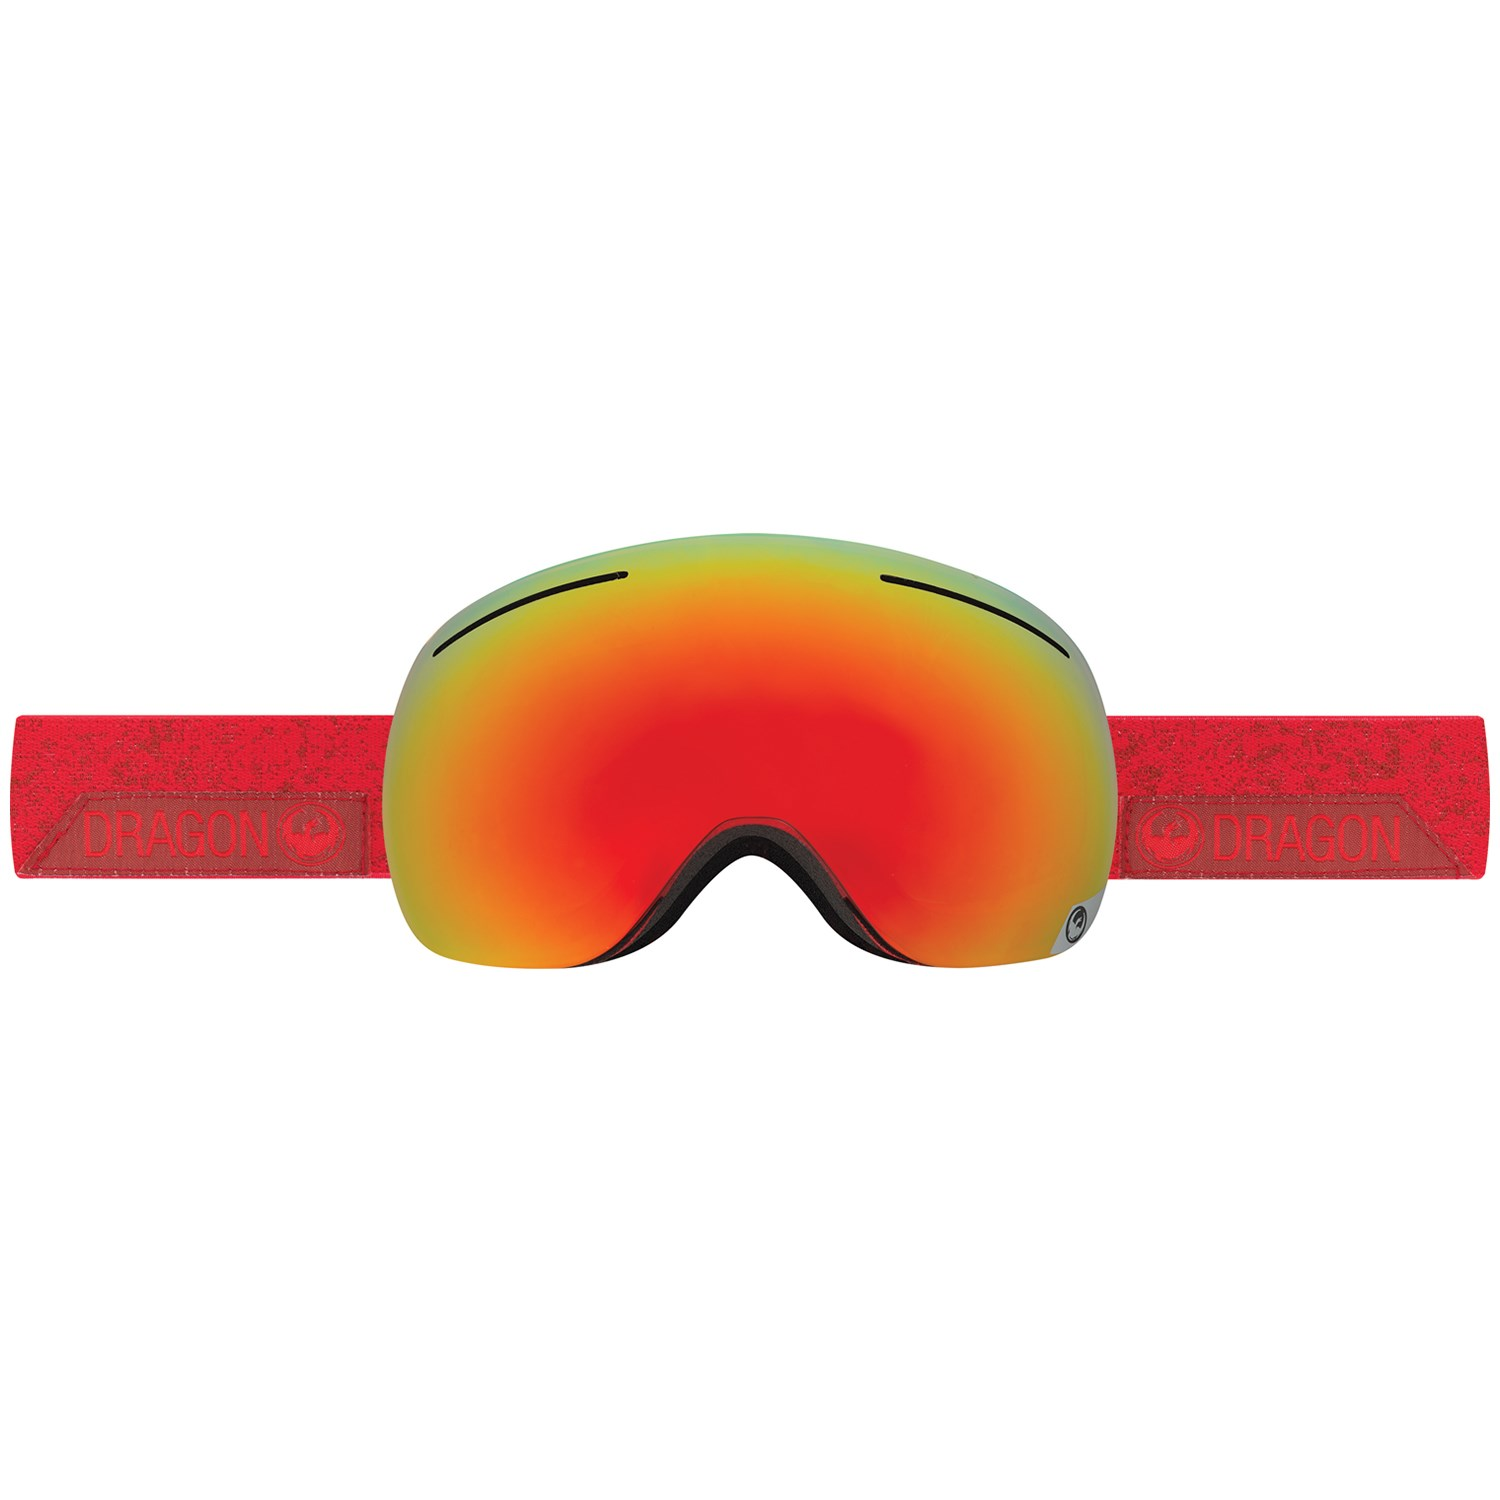 9dcdaacda5 Buy adidas goggles womens red   OFF48% Discounted